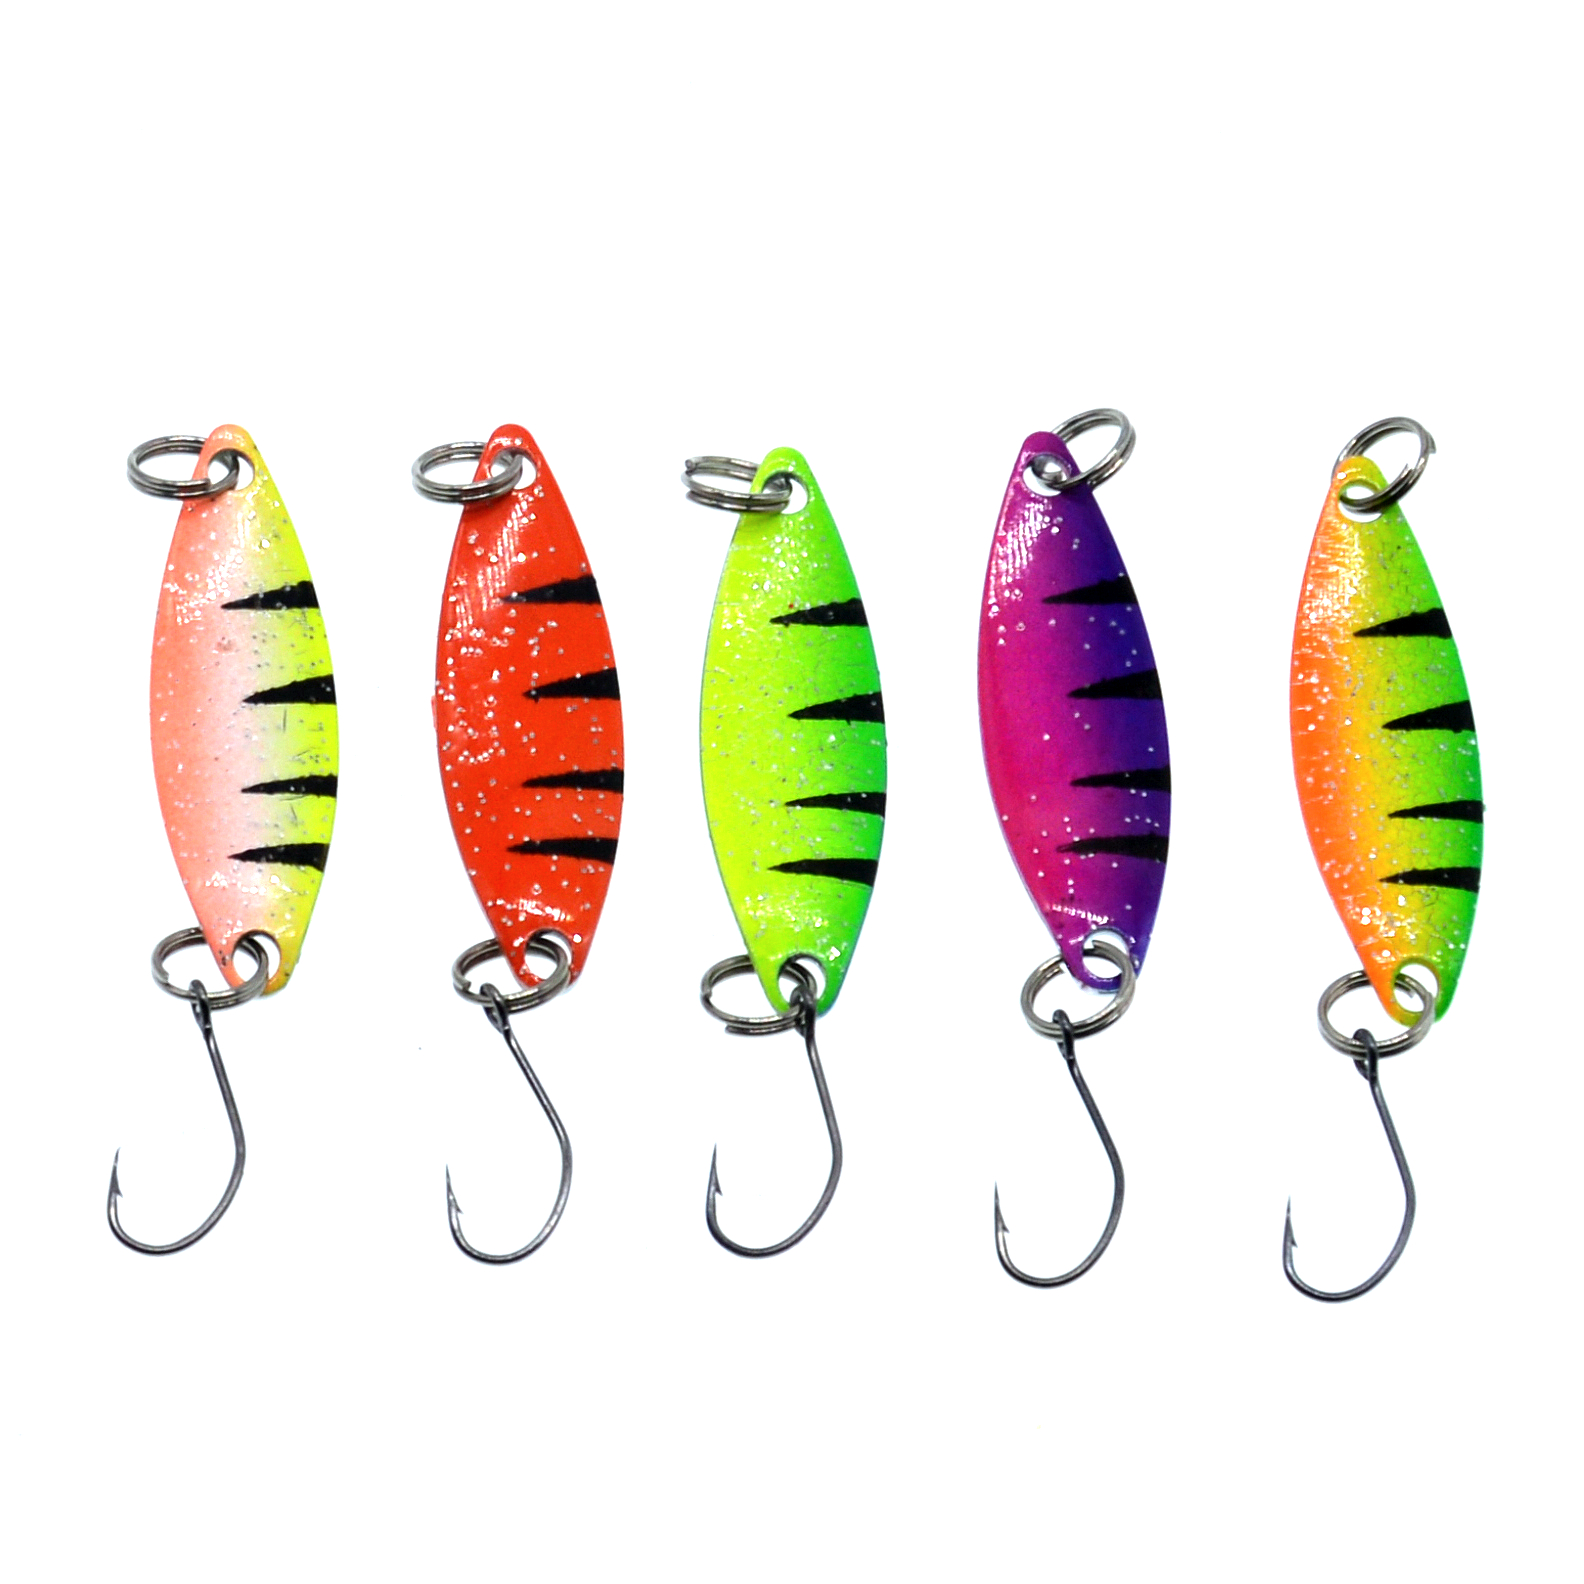 WLDSLURE  5Pcs/lot Fishing Lure Colorful Spoon Bait 2g Metal Spoon Fishing Lure For Trout Single Hook-in Fishing Lures from Sports & Entertainment